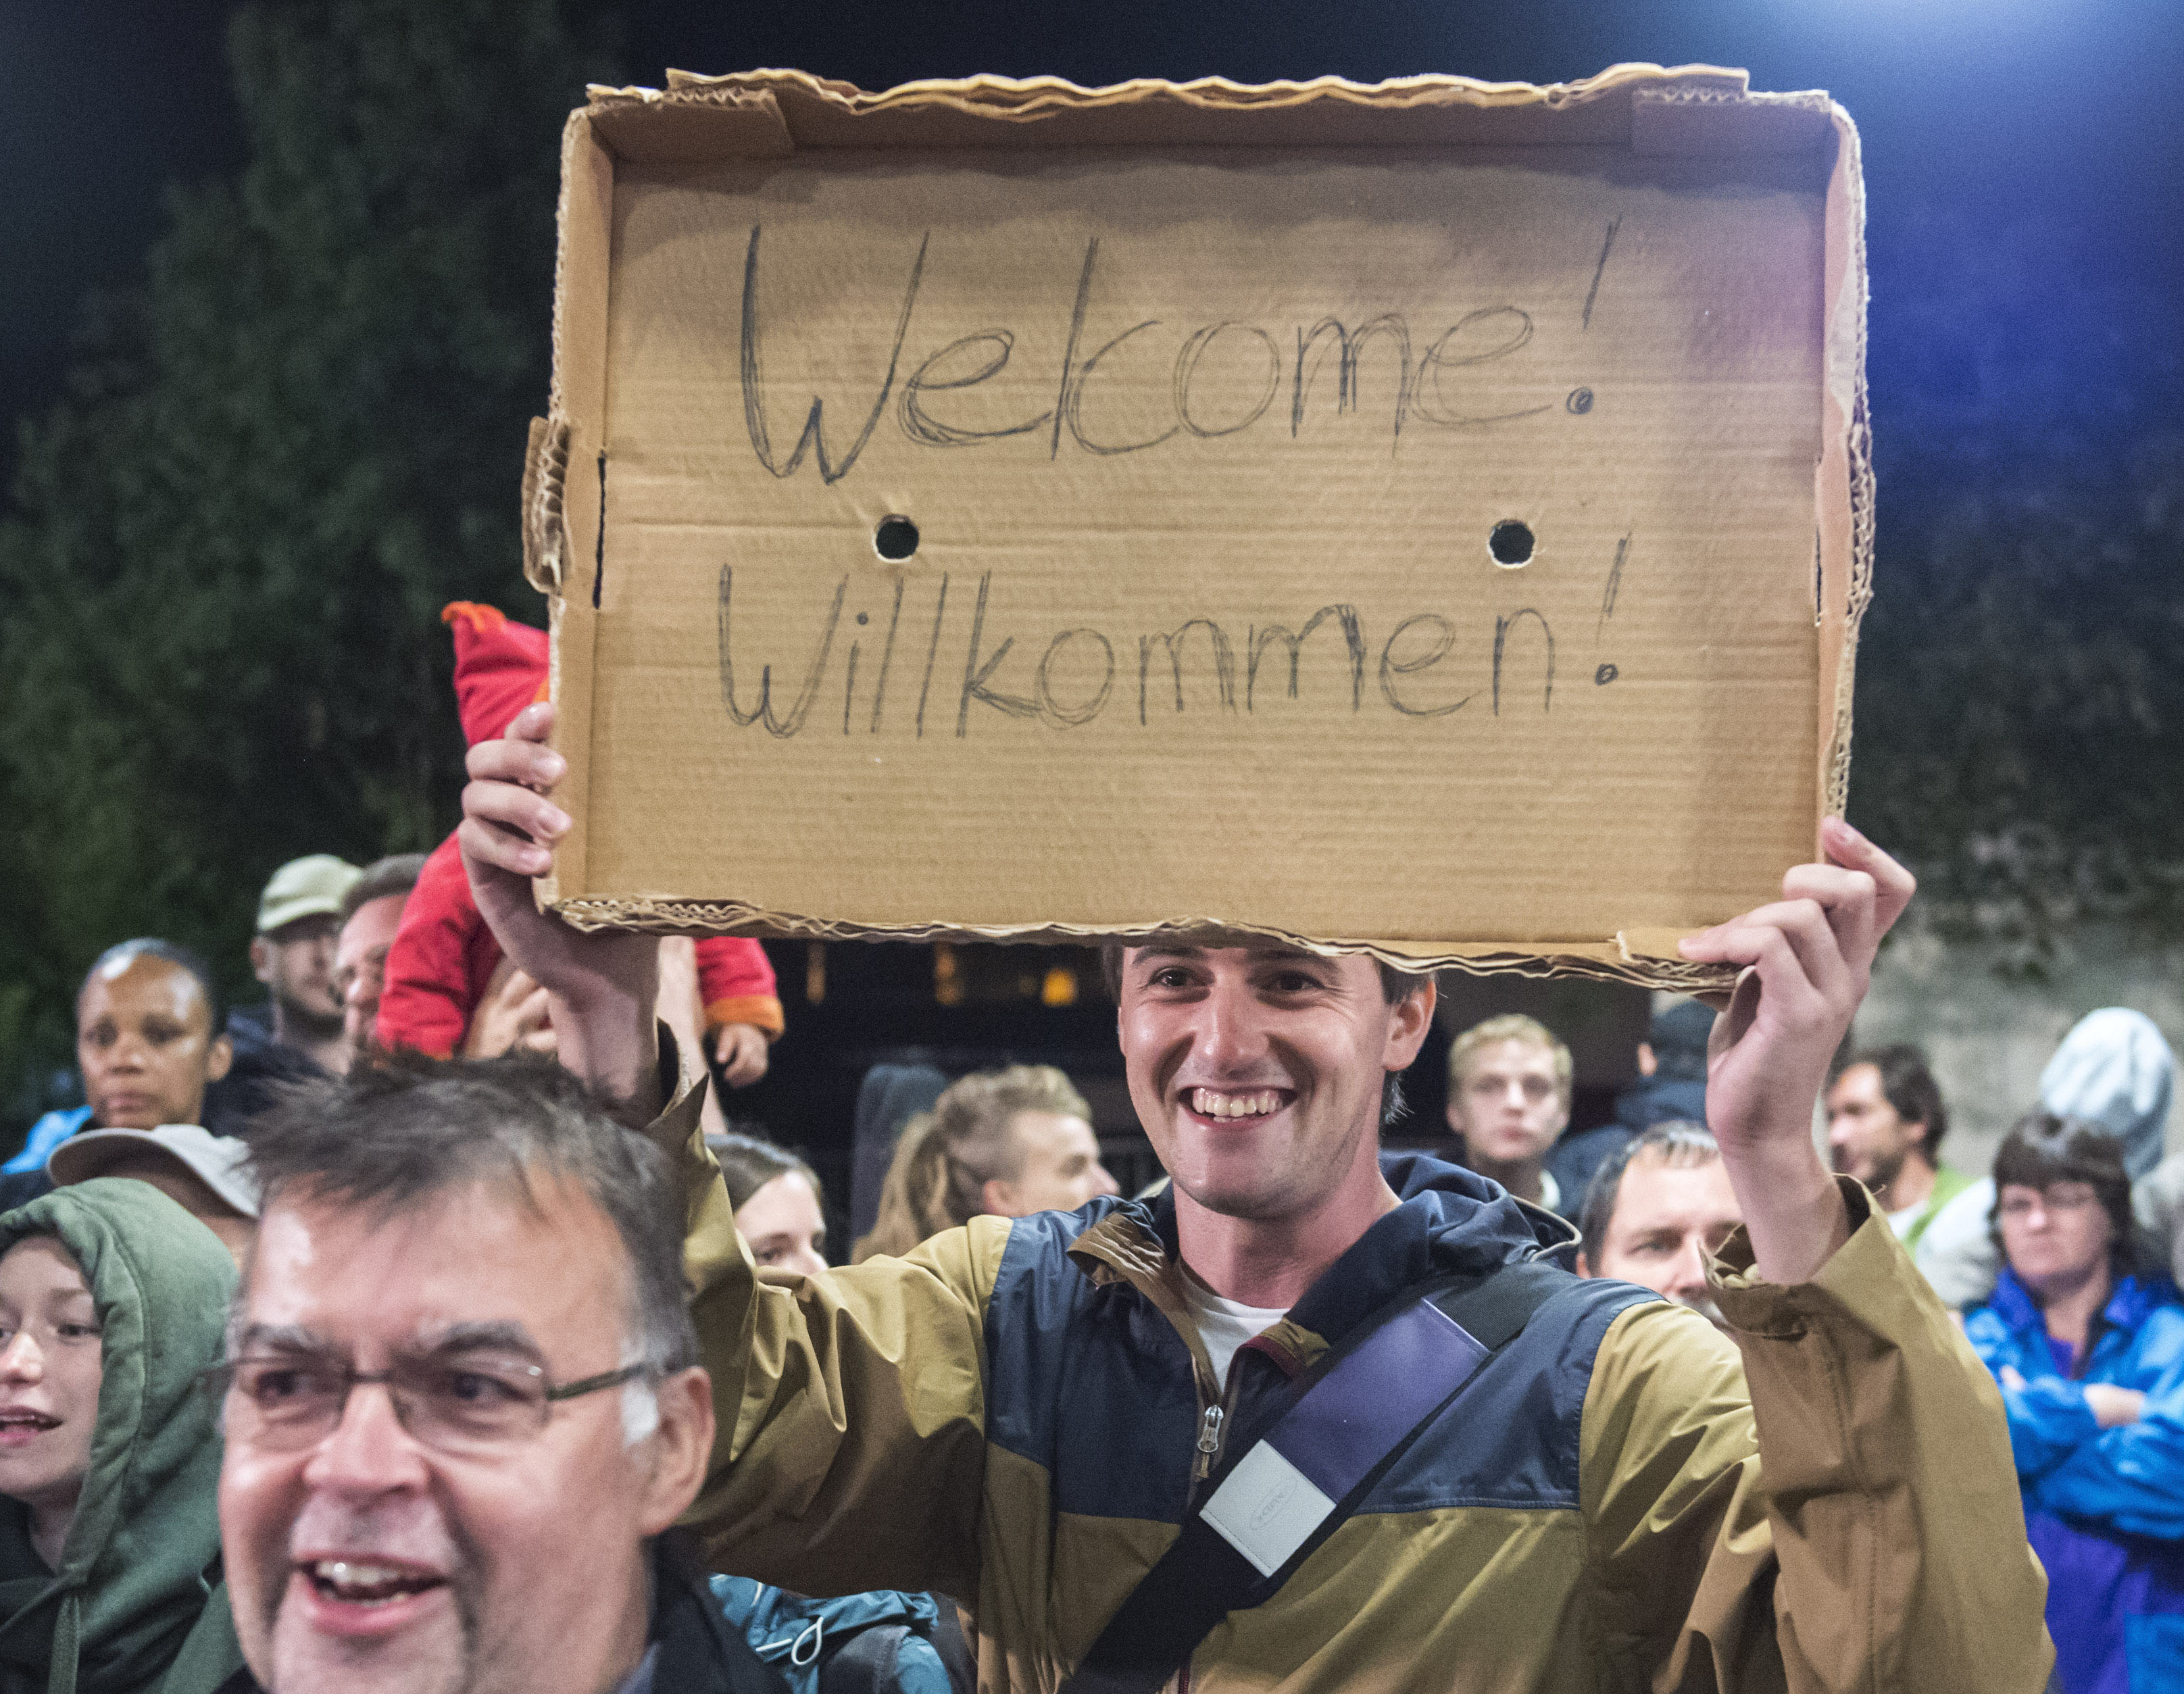 """FILE - In this Saturday, Sept. 5, 2015 file photo, a man holds a """"Welcome"""" sign during the arrival of refugees at the train station in Saalfeld, central Germany. Hundreds of refugees arrived in a train from Munich to be transported by busses to an accomodation center. The United States and the European Union project themselves as models for the world when it comes to democracy and human rights. Yet a common issue, migration, is bitterly dividing each of them(AP Photo/Jens Meyer, File)"""